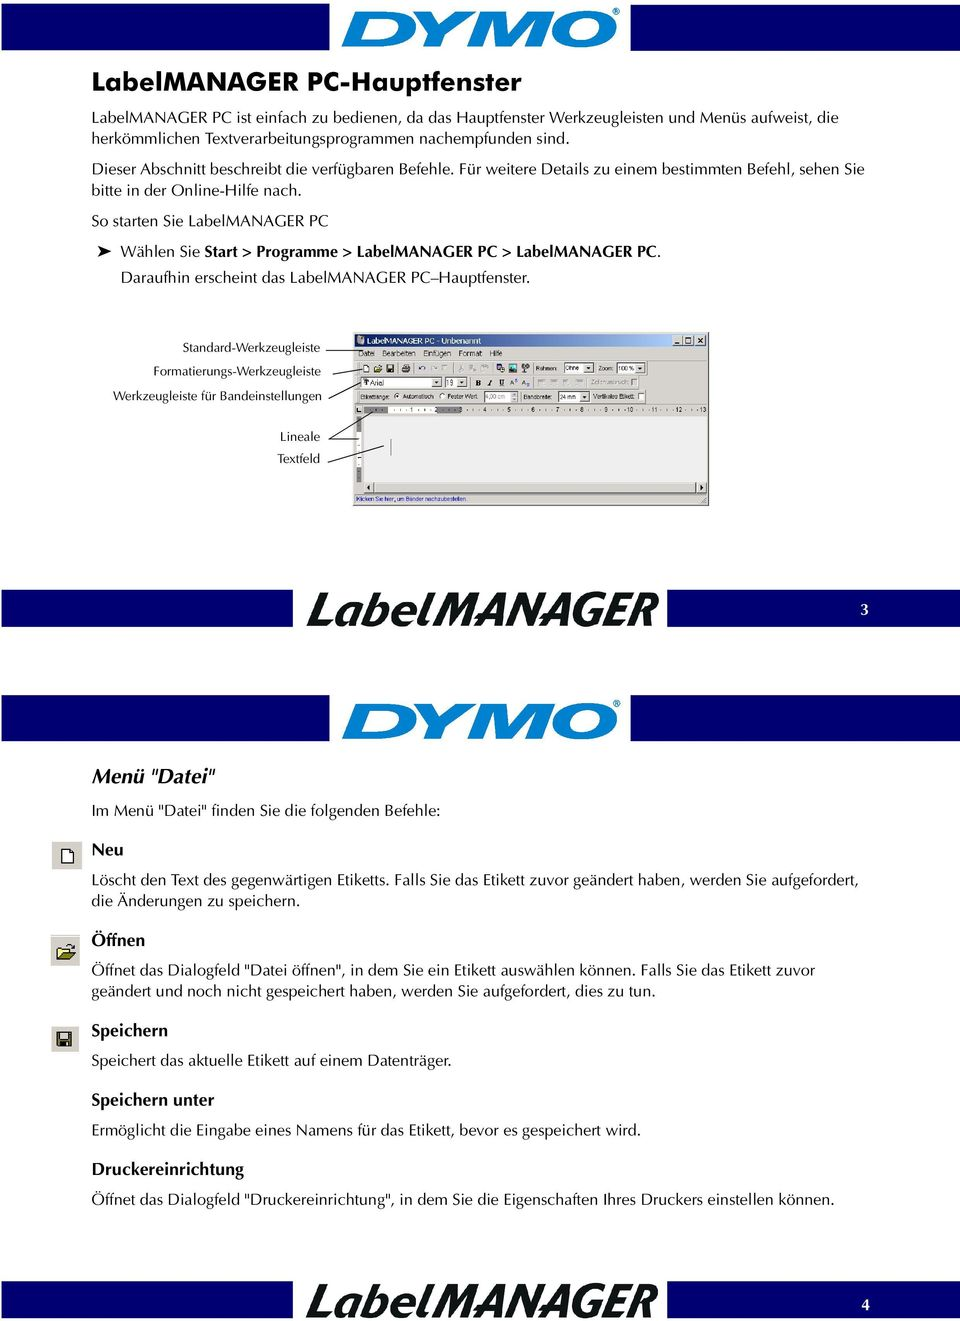 So starten Sie LabelMANAGER PC Wählen Sie Start > Programme > LabelMANAGER PC > LabelMANAGER PC. Daraufhin erscheint das LabelMANAGER PC Hauptfenster.